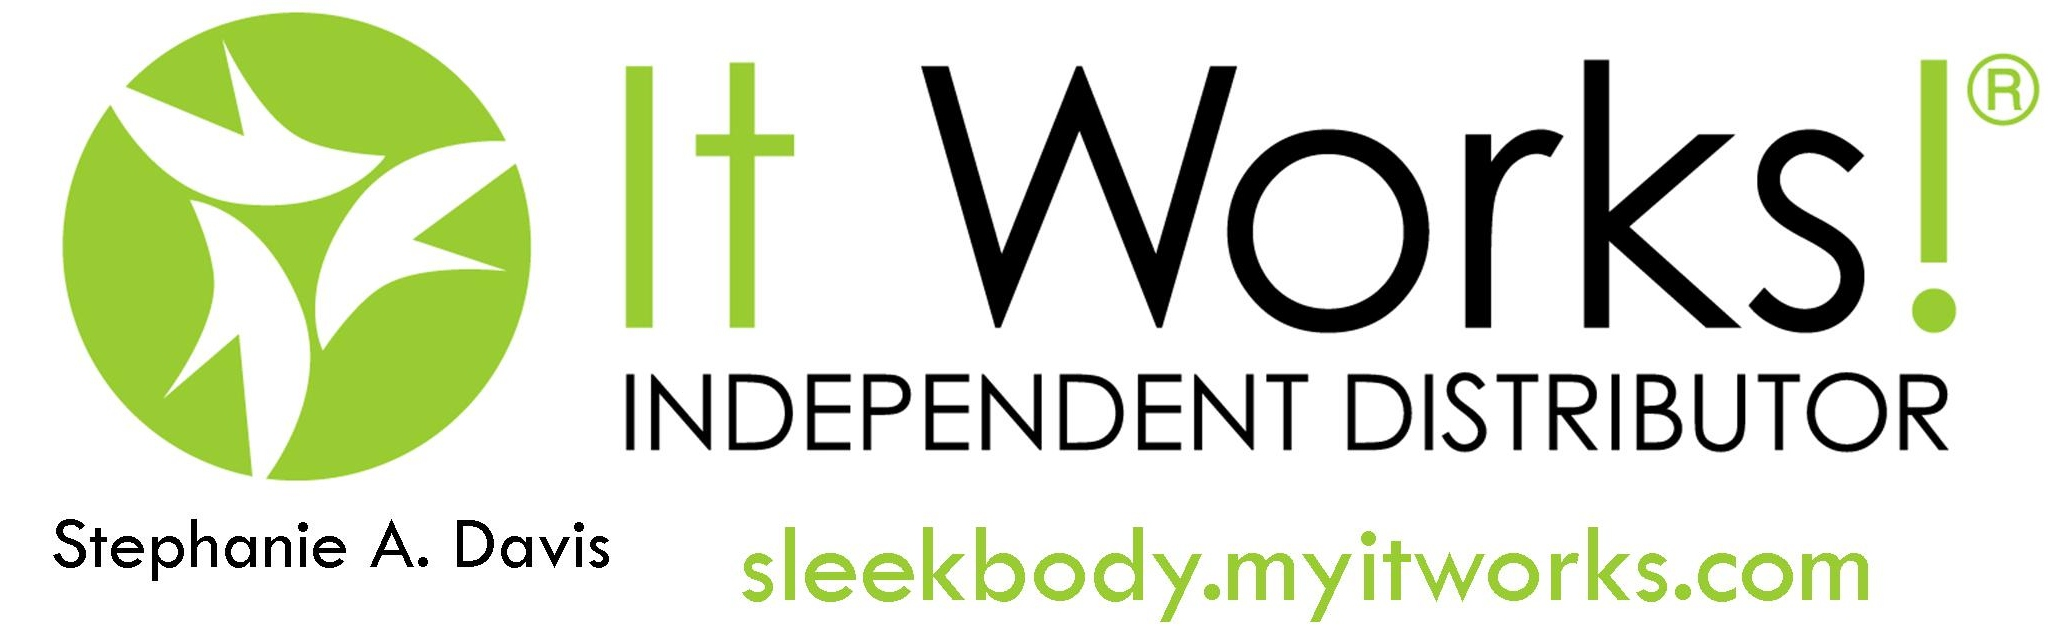 It Works Logo 23.jpg